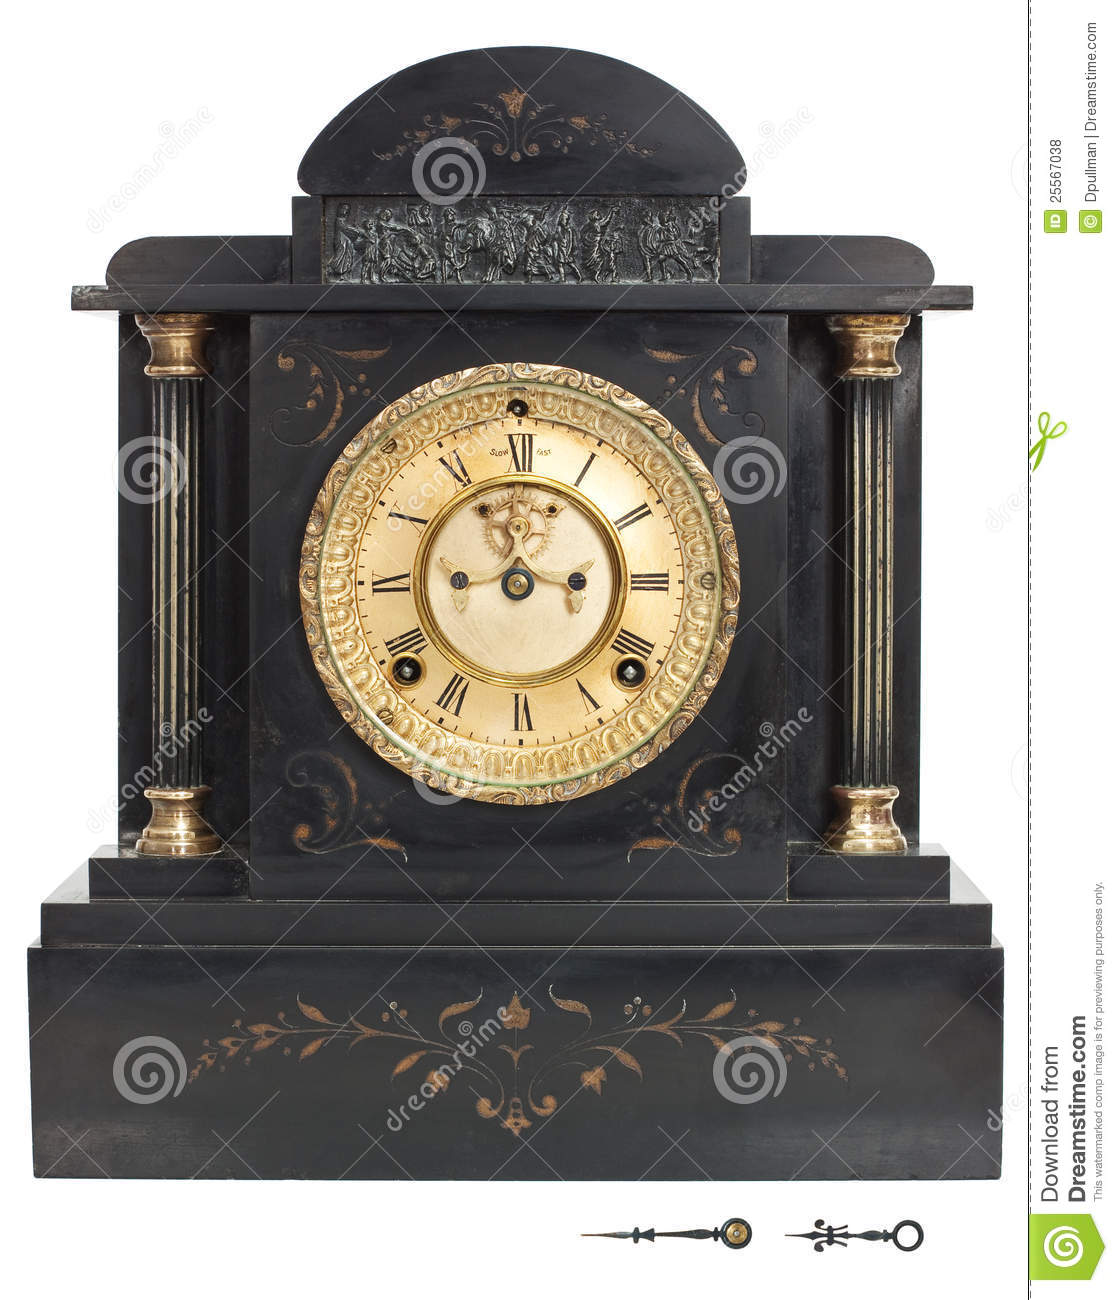 horloge antique avec les chiffres romains photo stock image du vieux clockwork 25567038. Black Bedroom Furniture Sets. Home Design Ideas